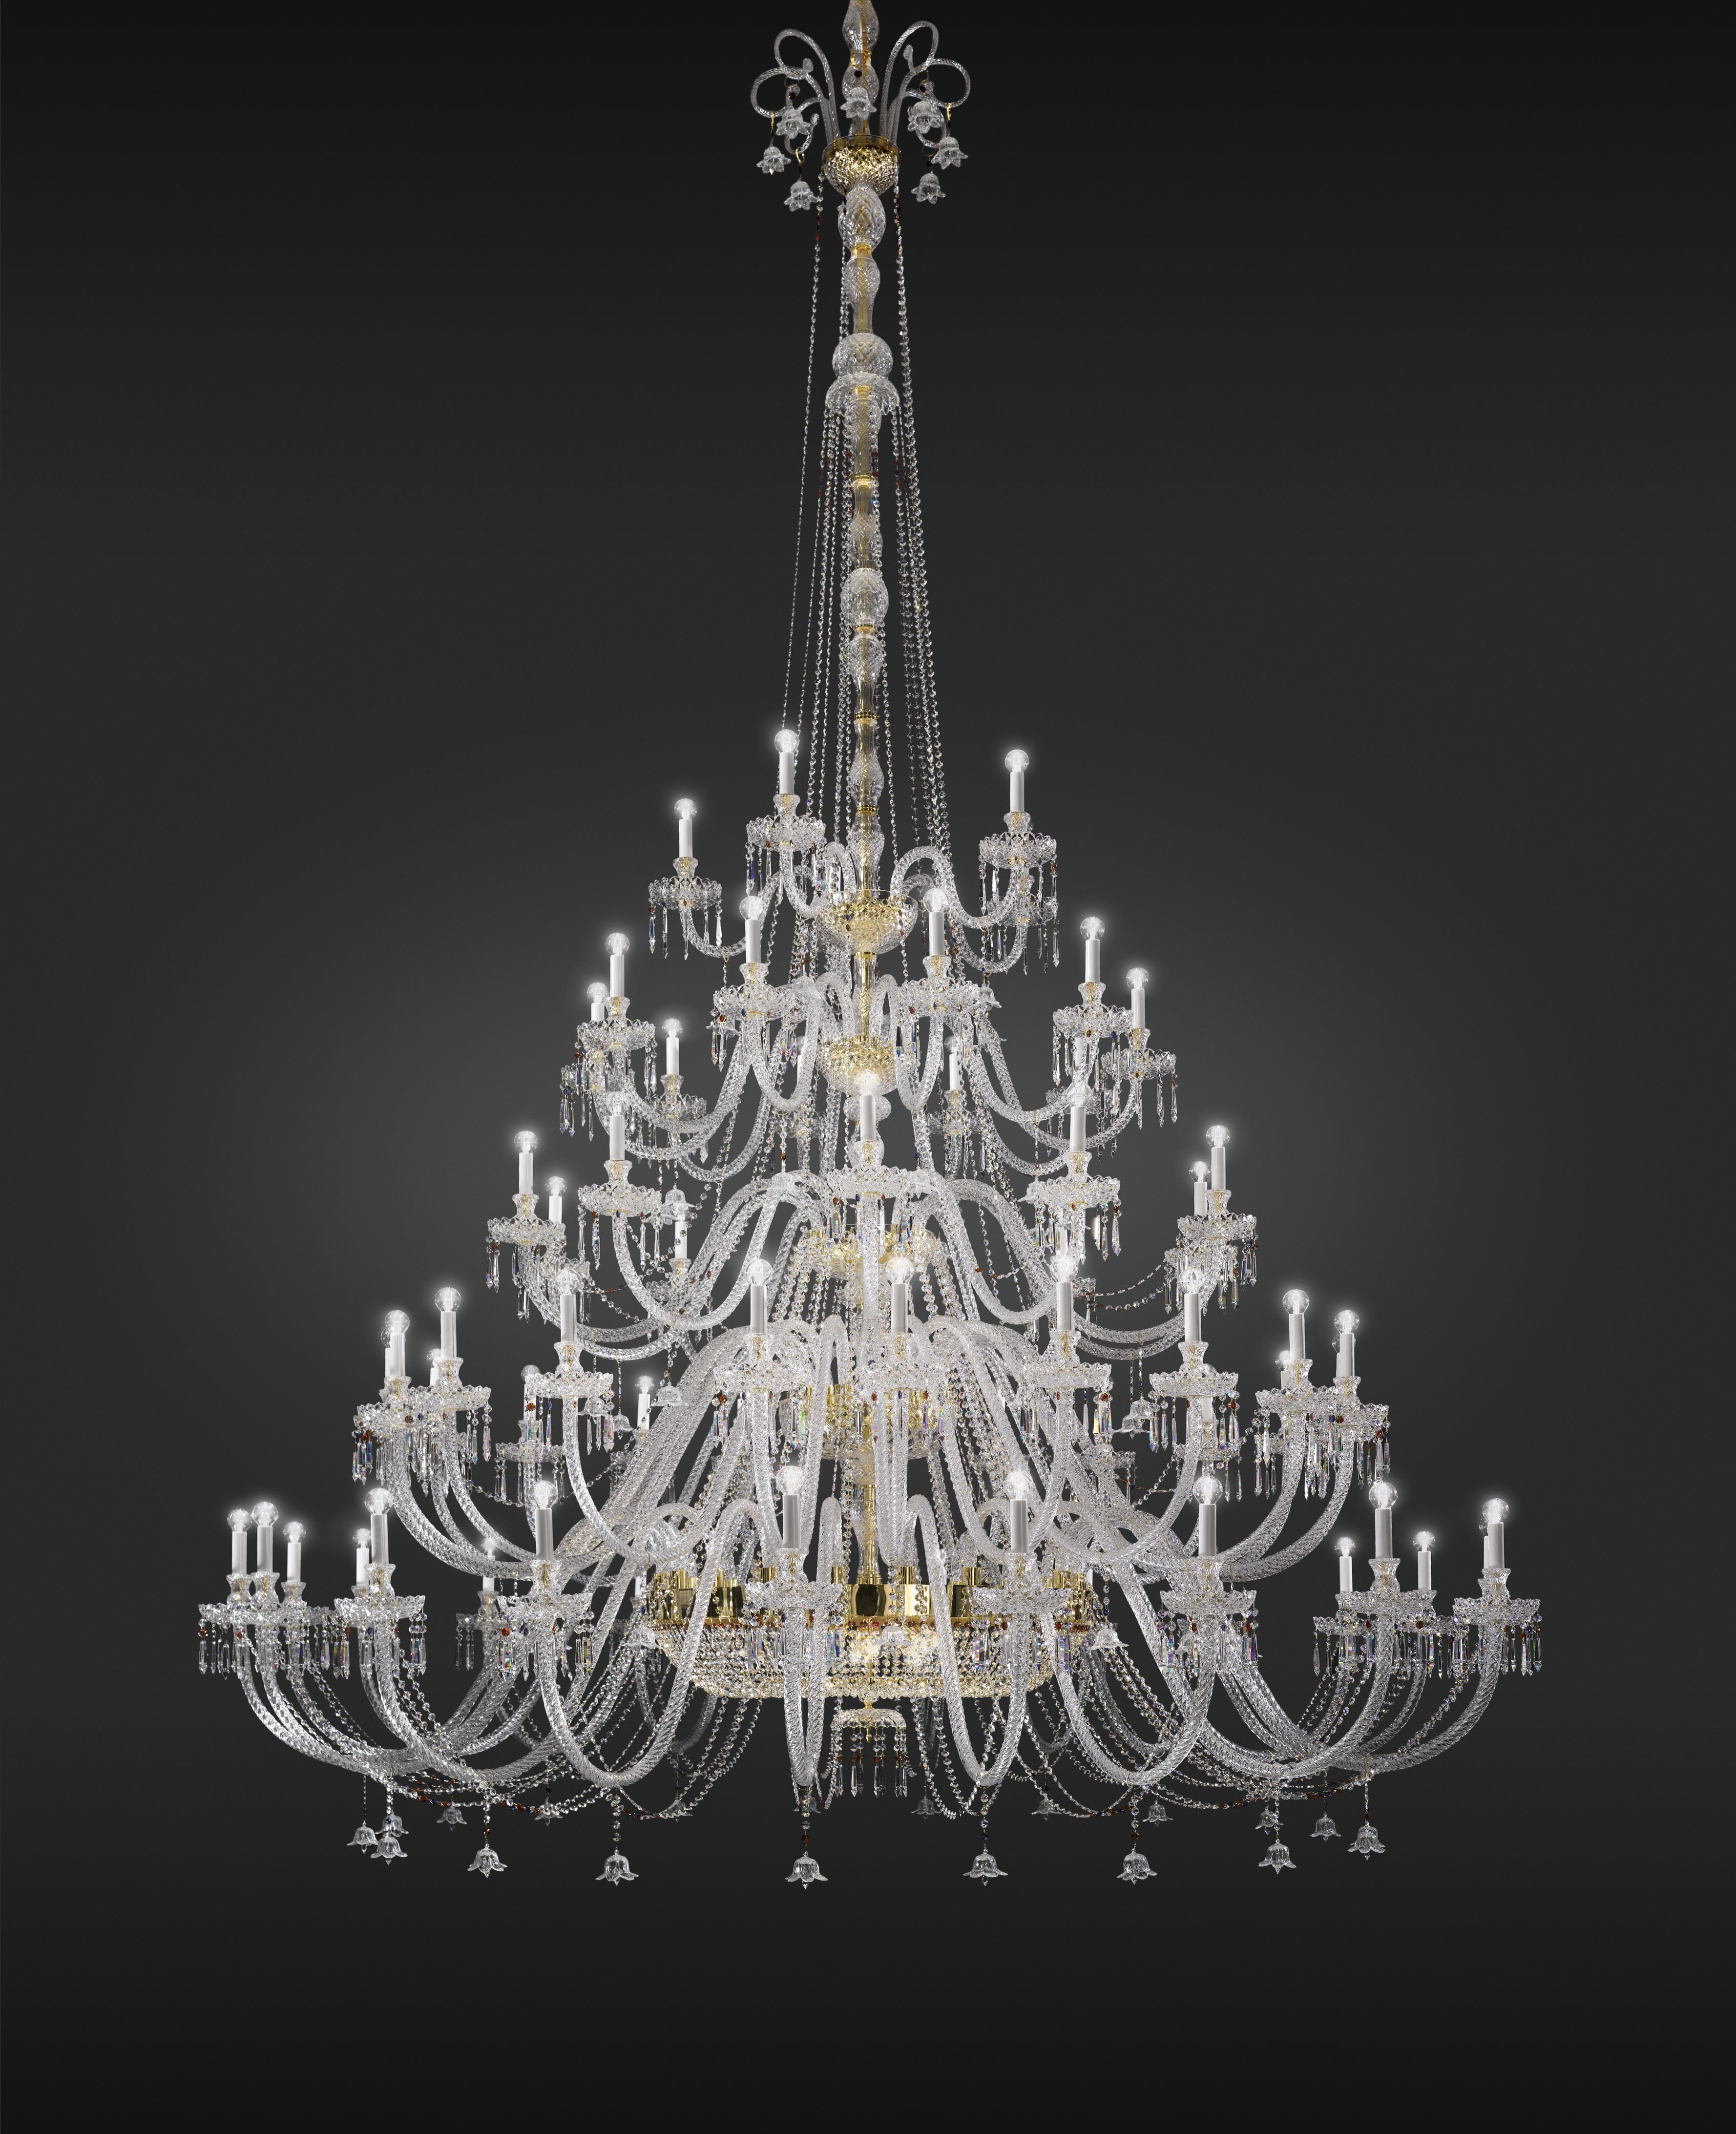 DOGMA Chandelier in carved crystal metal with gold finish